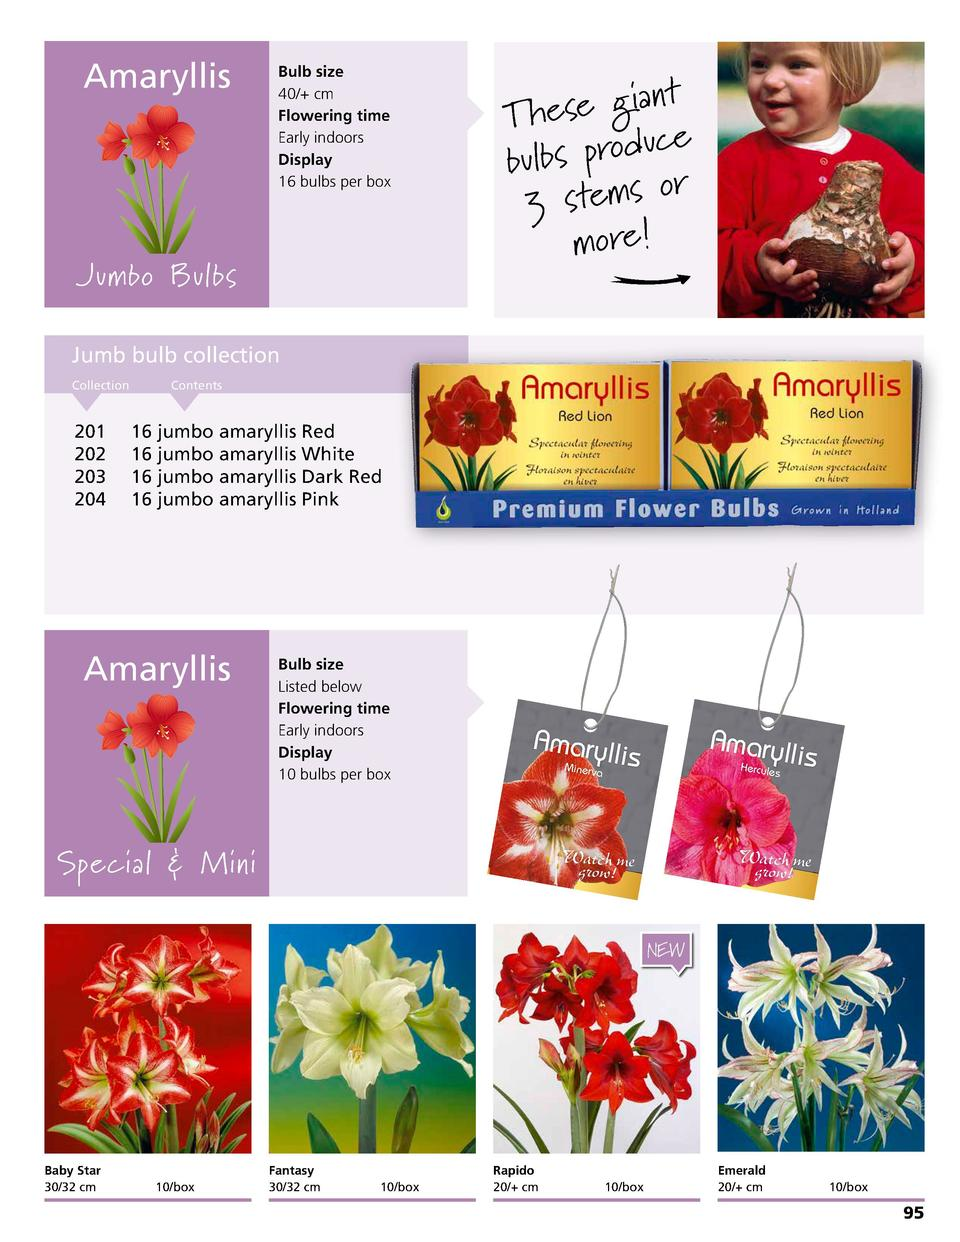 Amaryllis  Bulb size 40   cm Flowering time Early indoors Display 16 bulbs per box  ia nt g e s e h T ce u d o r p s b l b...